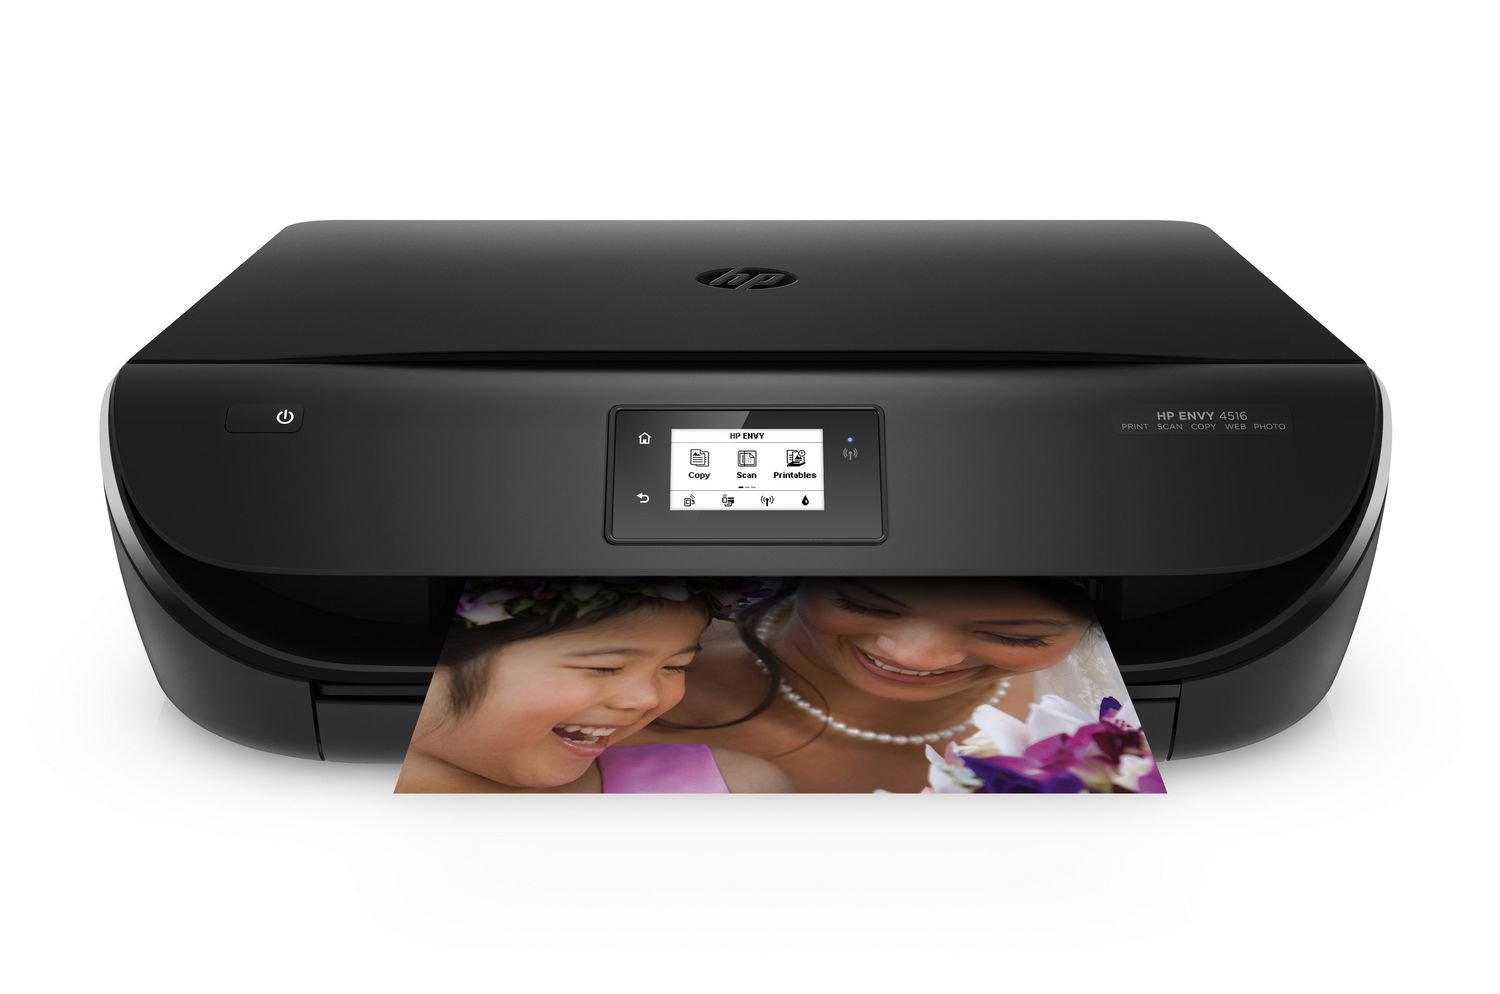 HP Envy 4516(4520) Wireless All-in-One Color Photo Print Scan Copy Printer, New